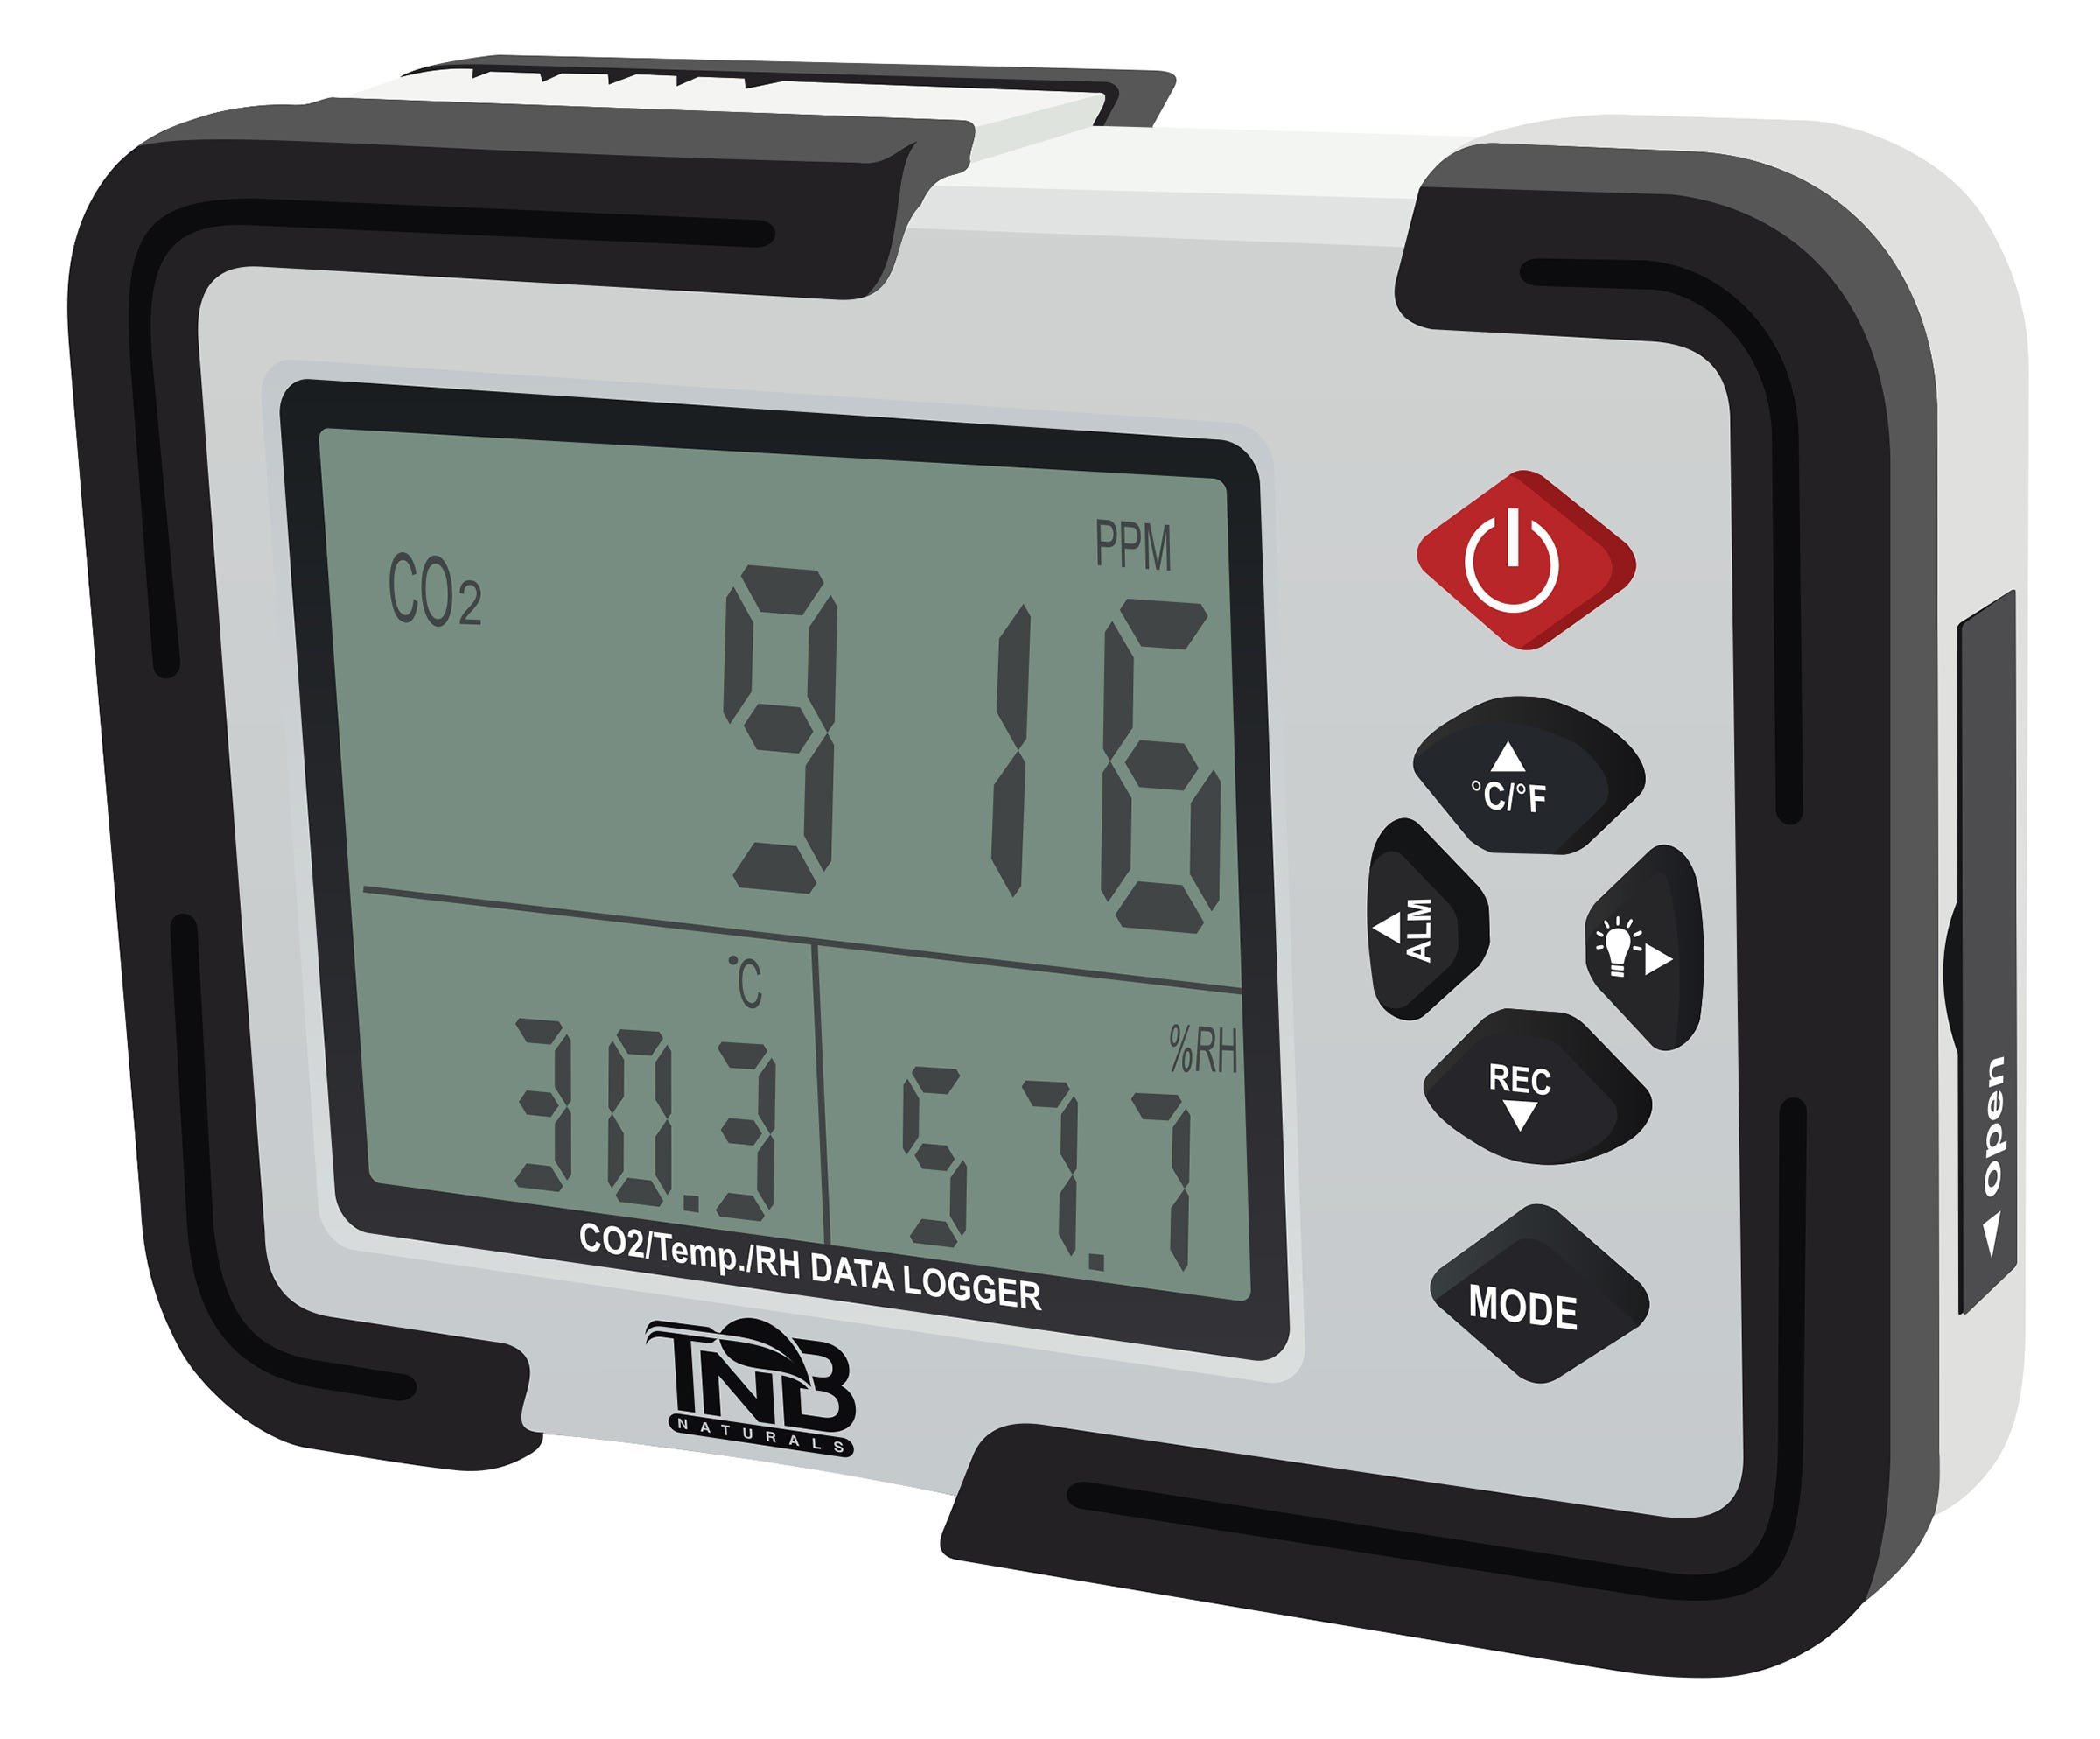 TNB Naturals CO2 Monitor *DISCONTINUED* This item has been discontinued, Please try our selection of Controllers, PPM Monitors for an alternative. TNB Naturals CO2 Monitor TNB Naturals CO2 Monitor and Thermo Hygrometer is a sleek portable unit that has been developed to monitor and display CO2 concentration, ambient temperature and relative humidity, along with the year, month, date and time. The monitor has a 3.5 inch LCD display and is USB compatible with a logging memory of 12,700 units. It has an accuracy of + or - 50 ppm and has the capability to read CO2 levels as high as 9999 ppm. The unit features a built-in warning alarm for high levels of CO2 and the option to display the temperature in Celsius or Fahrenheit. It has a built-in backlight that illuminates the display so that monitoring levels in the dark or during the night cycle can be done with ease. The monitor has the ability to operate from the standard power adapter that is included or 4 AA batteries. The light weight of the unit (only 9.2 oz) makes it easy to transport or move around from one area to another if necessary. It also comes with a hard plastic carrying case for those on the move, making it extremely easy to use and very versatile.